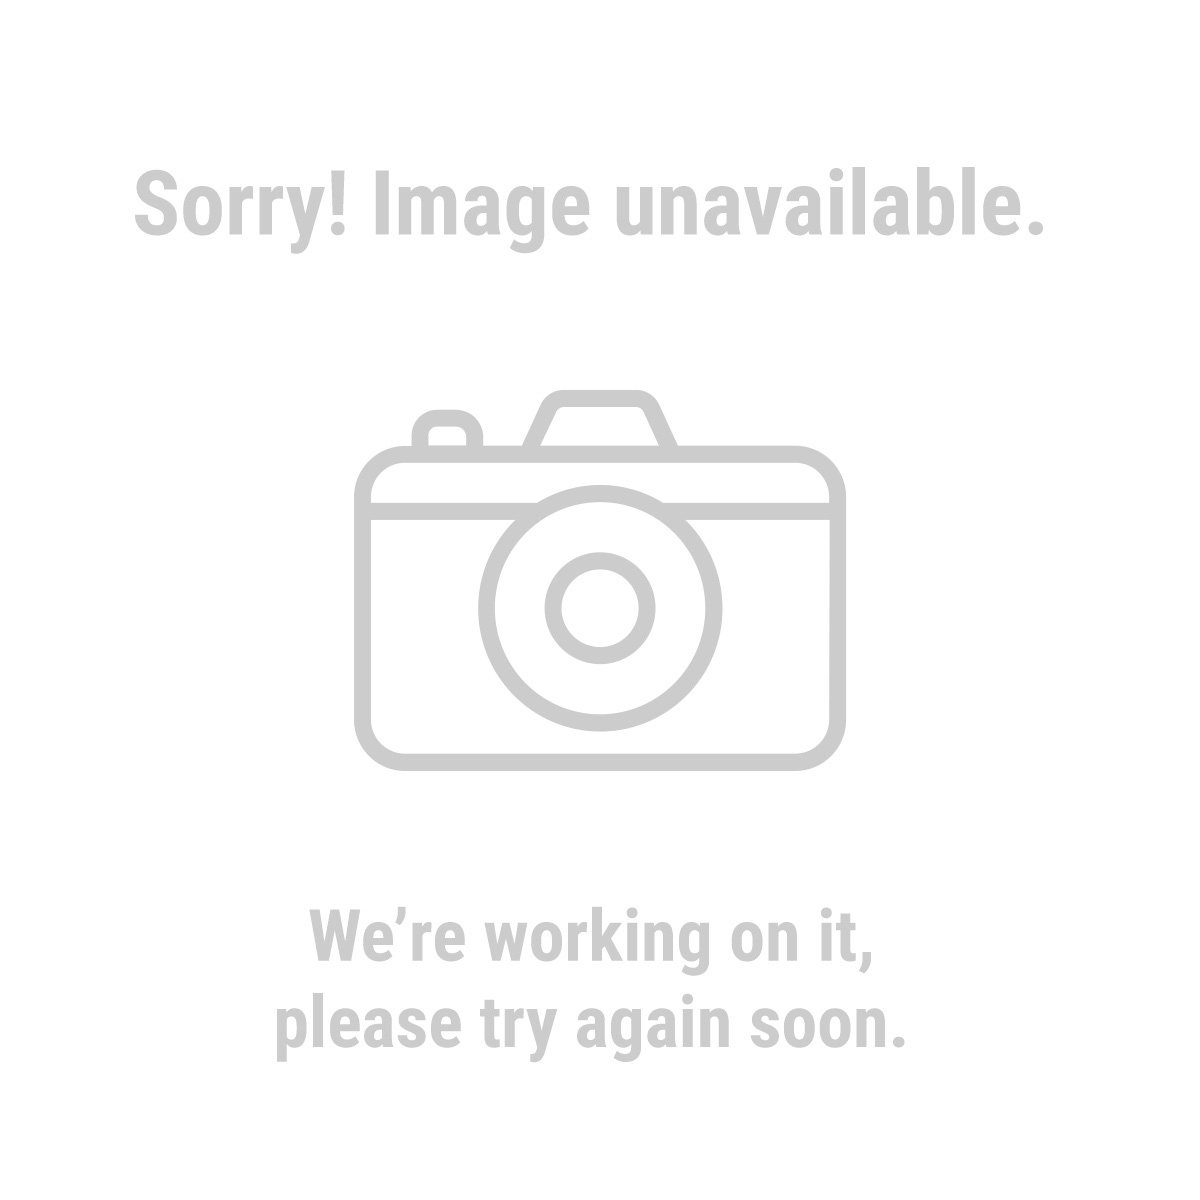 58 in x 50 ft Heavy Duty Garden Hose